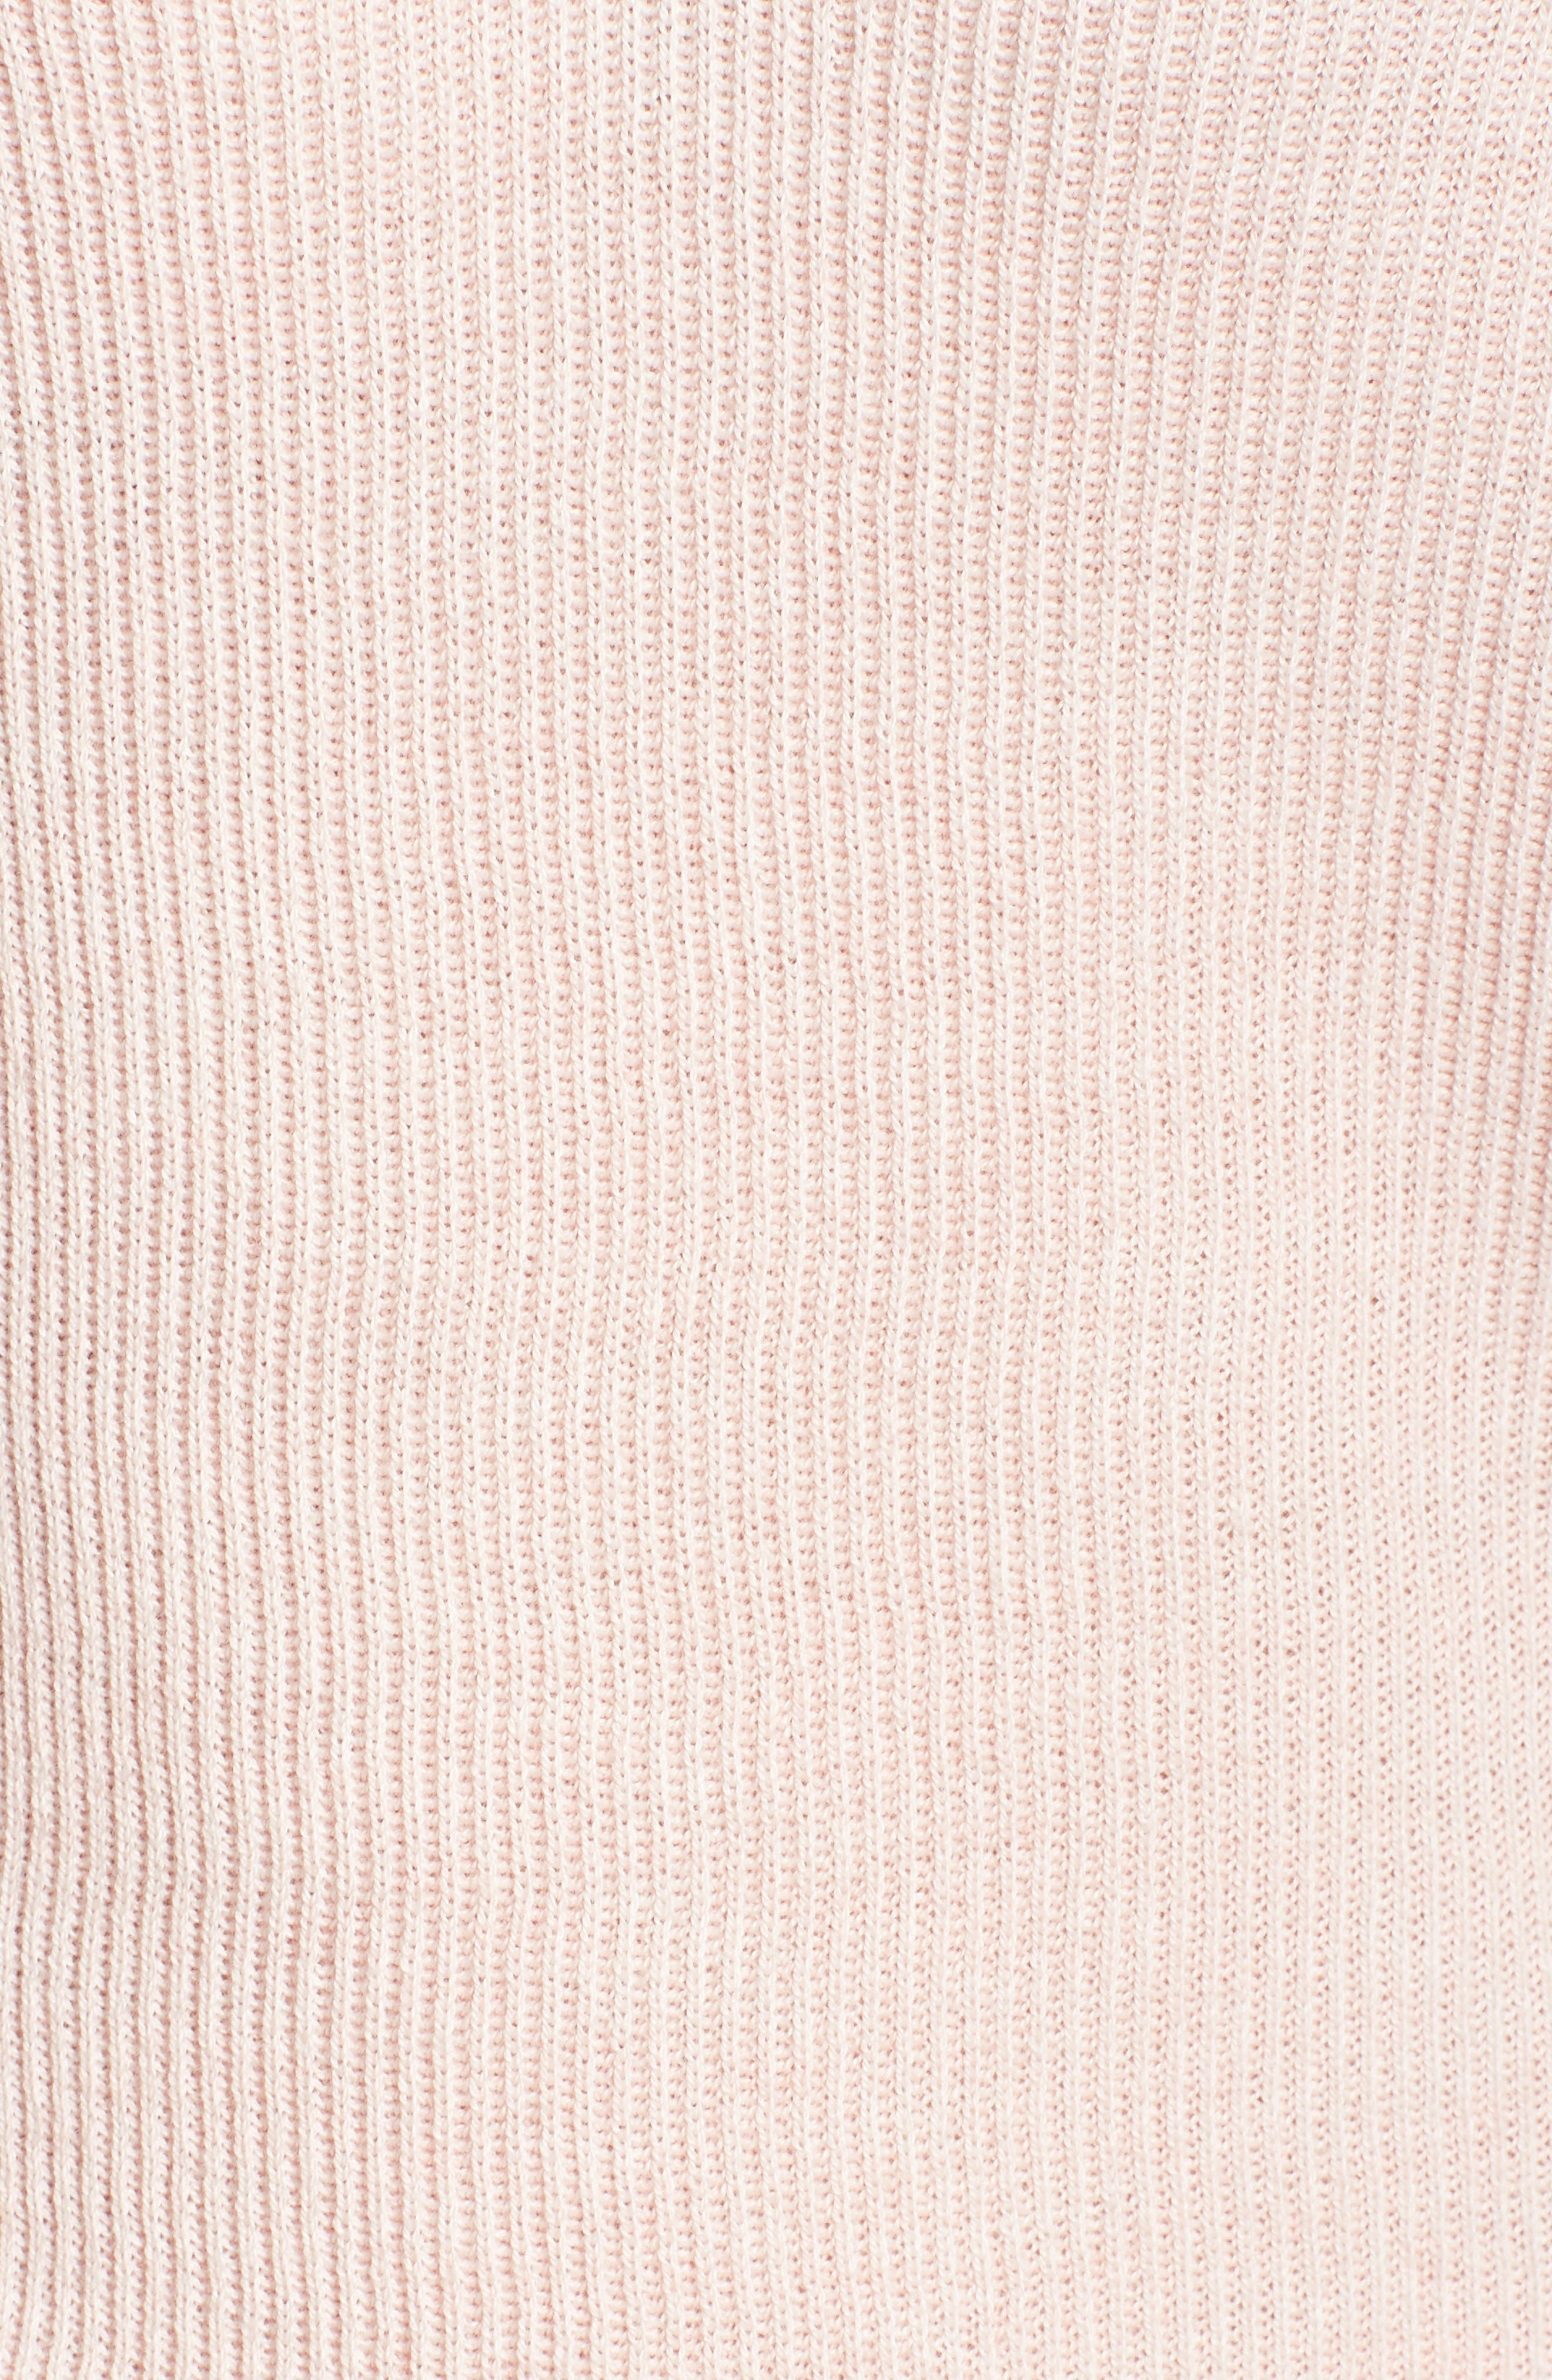 Veronica Lounge Pullover,                             Alternate thumbnail 10, color,